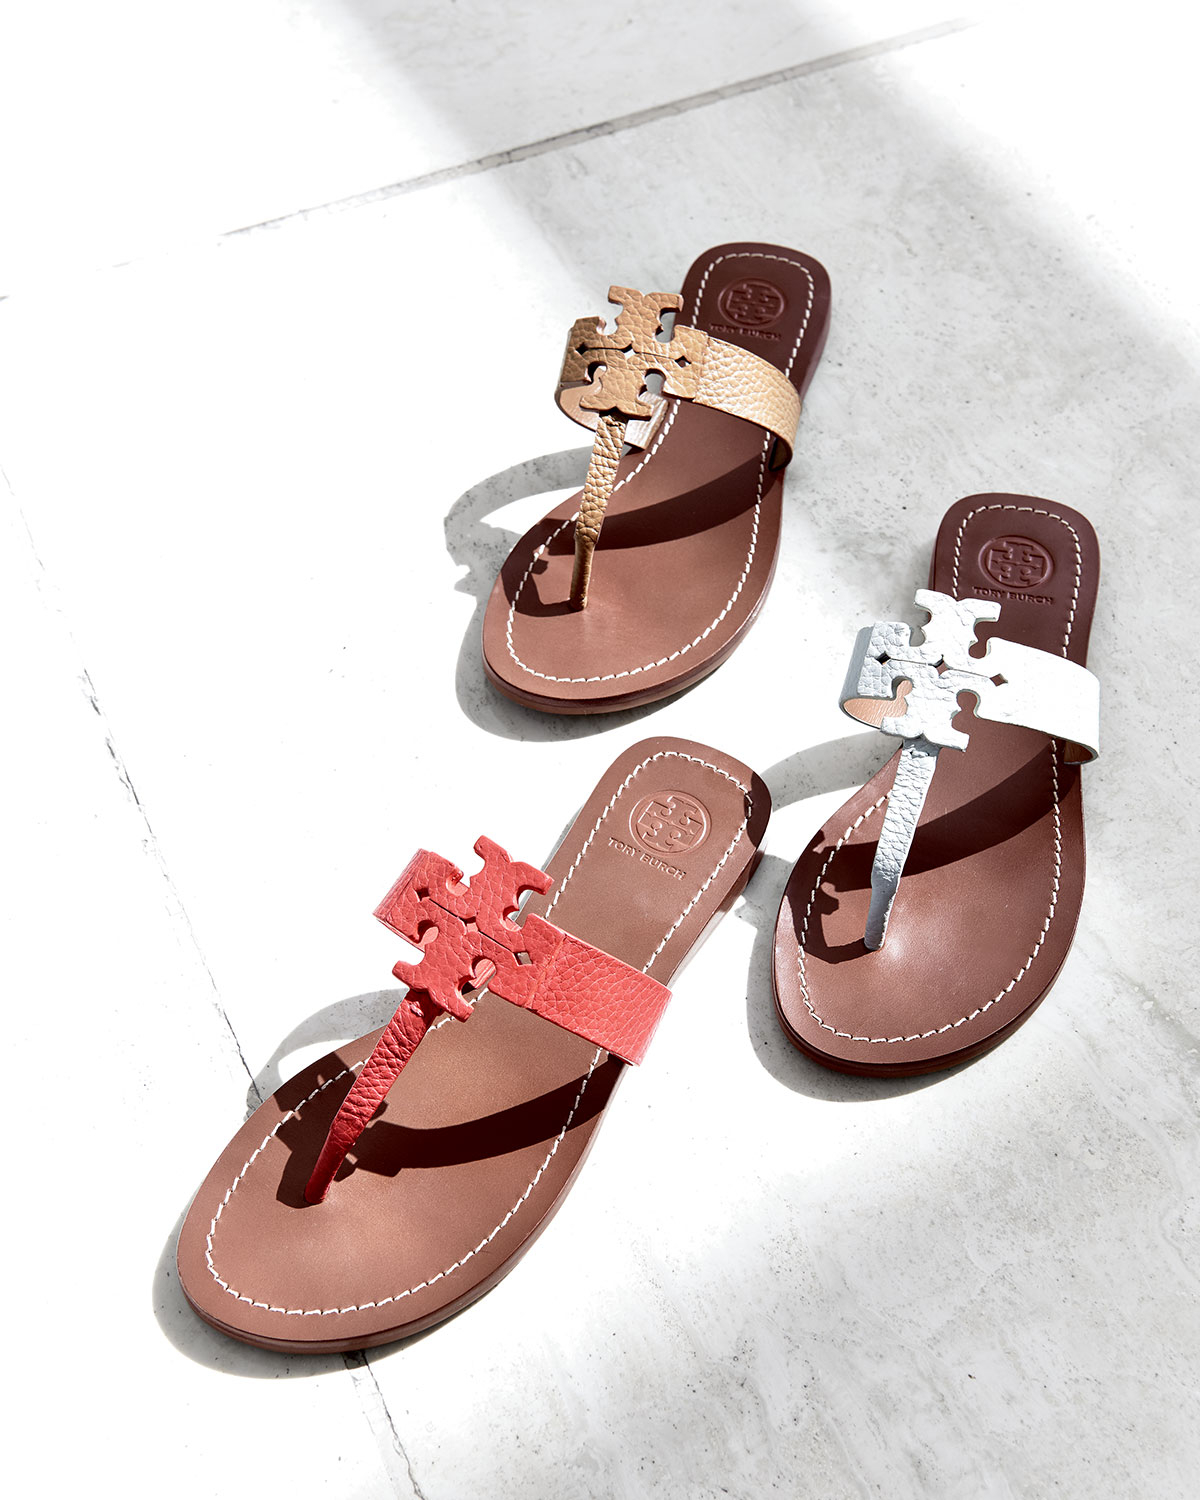 ddd9ff1ef6c Lyst - Tory Burch Moore Leather Thong Sandal in Brown